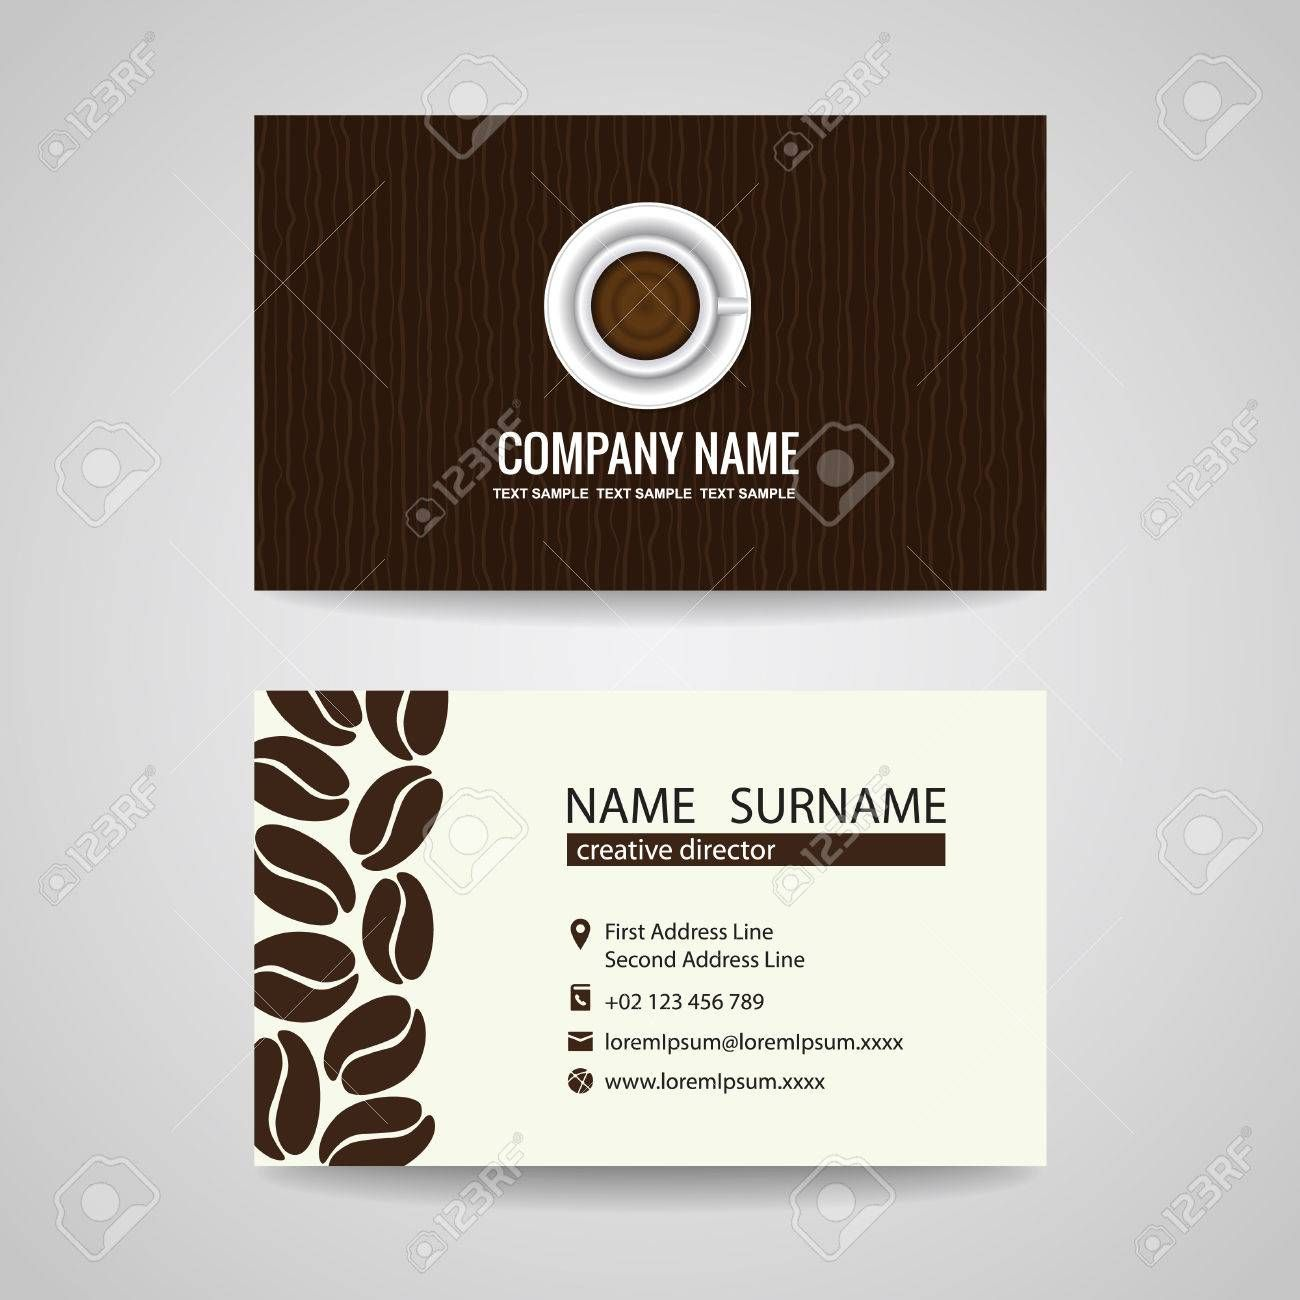 Apocalomegaproductions Inside Gartner Business Cards Template Cumed Org Free Business Card Templates Modern Business Cards Card Templates Free